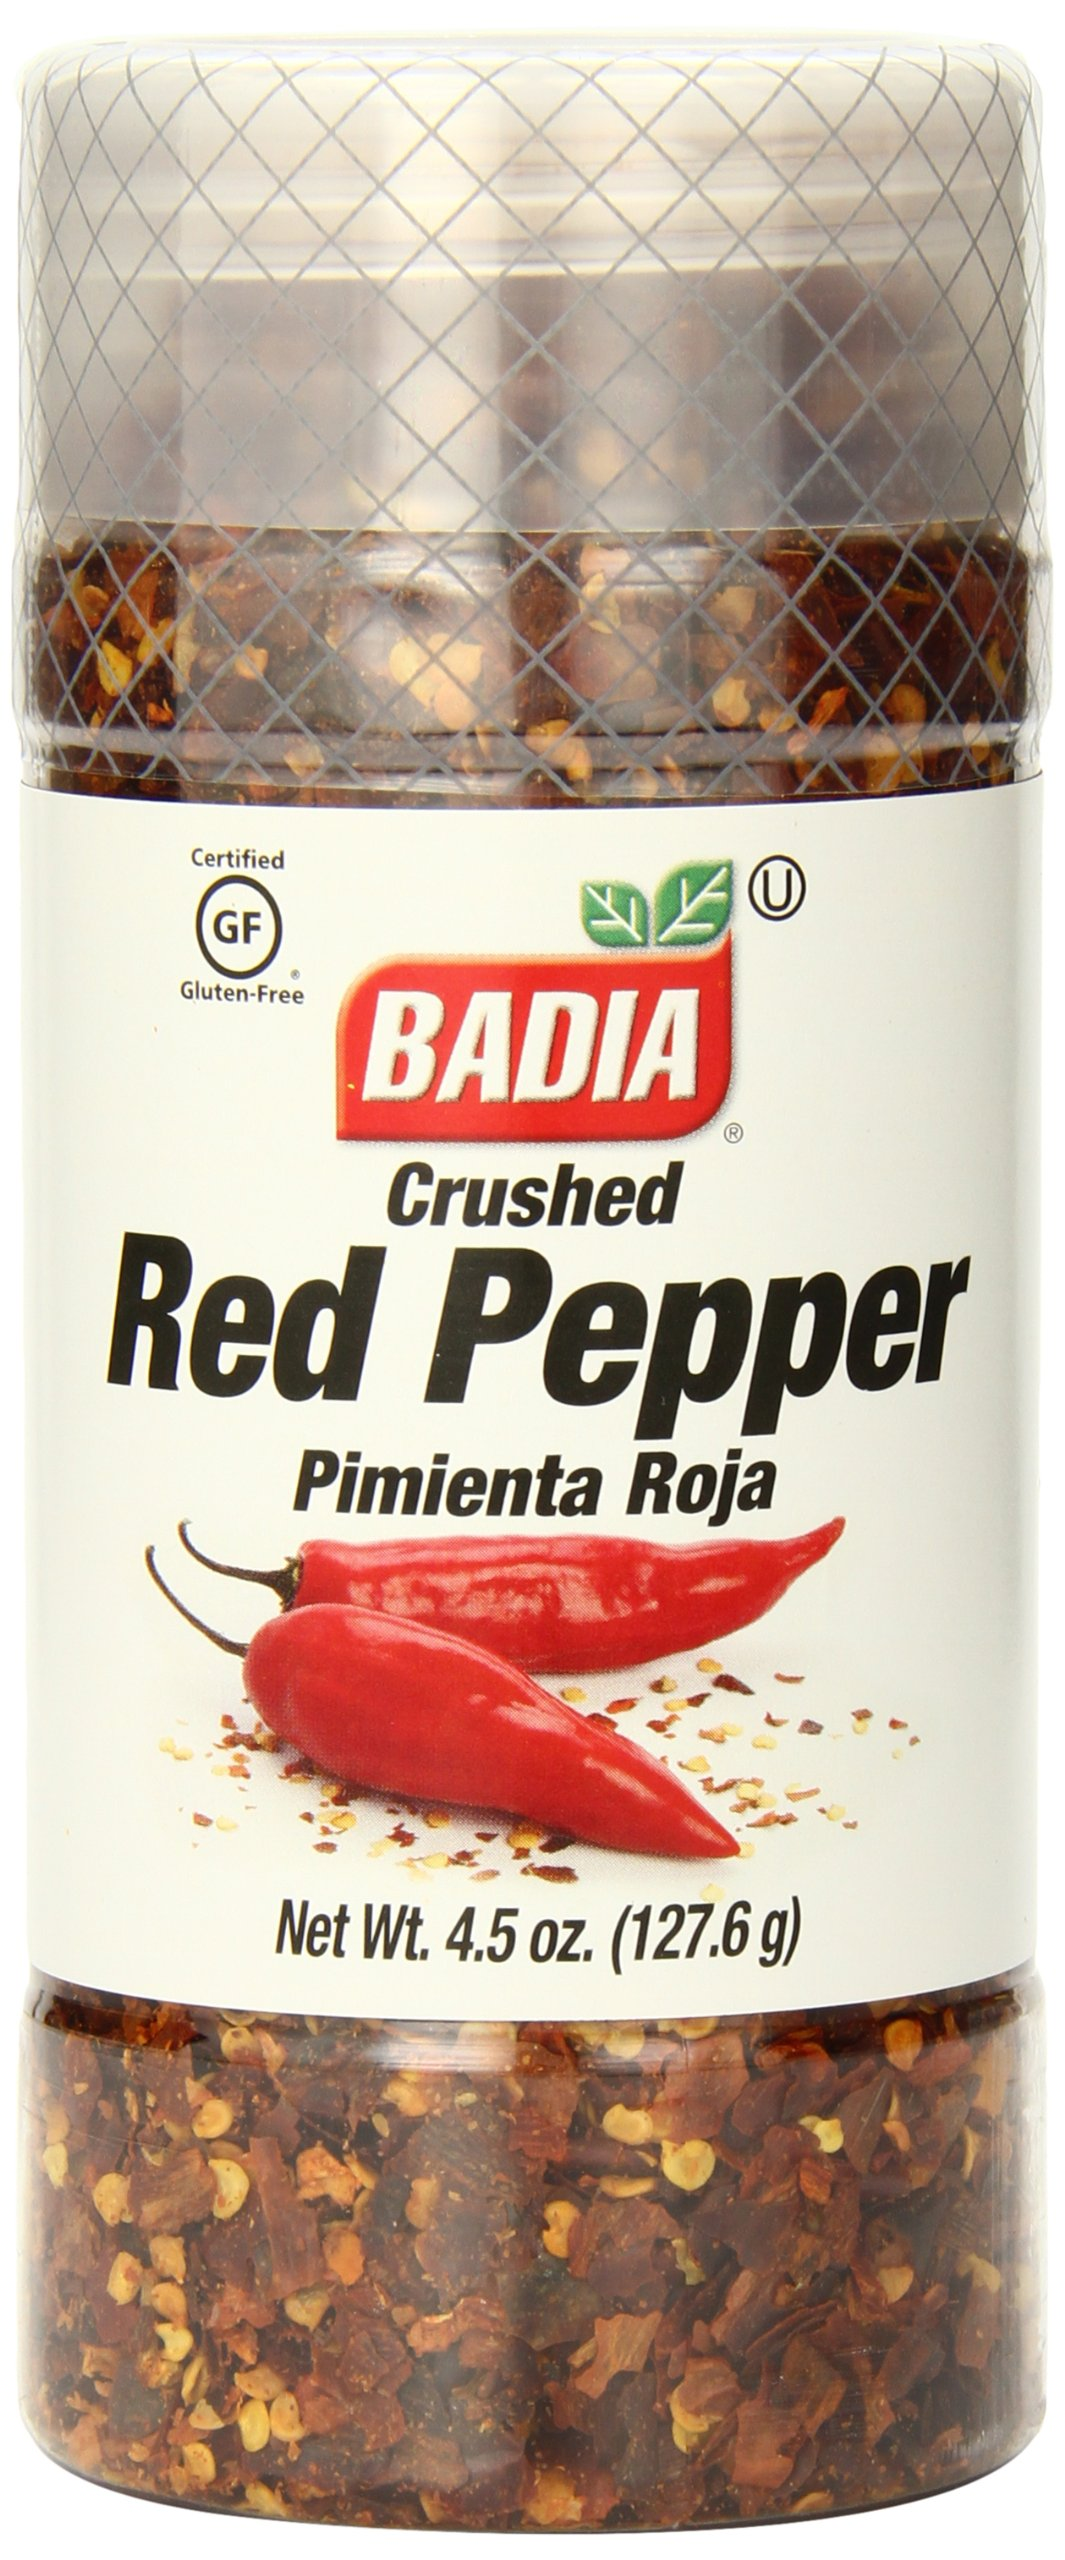 Badia Red Pepper Crushed, 4.5 Ounce (Pack of 12)